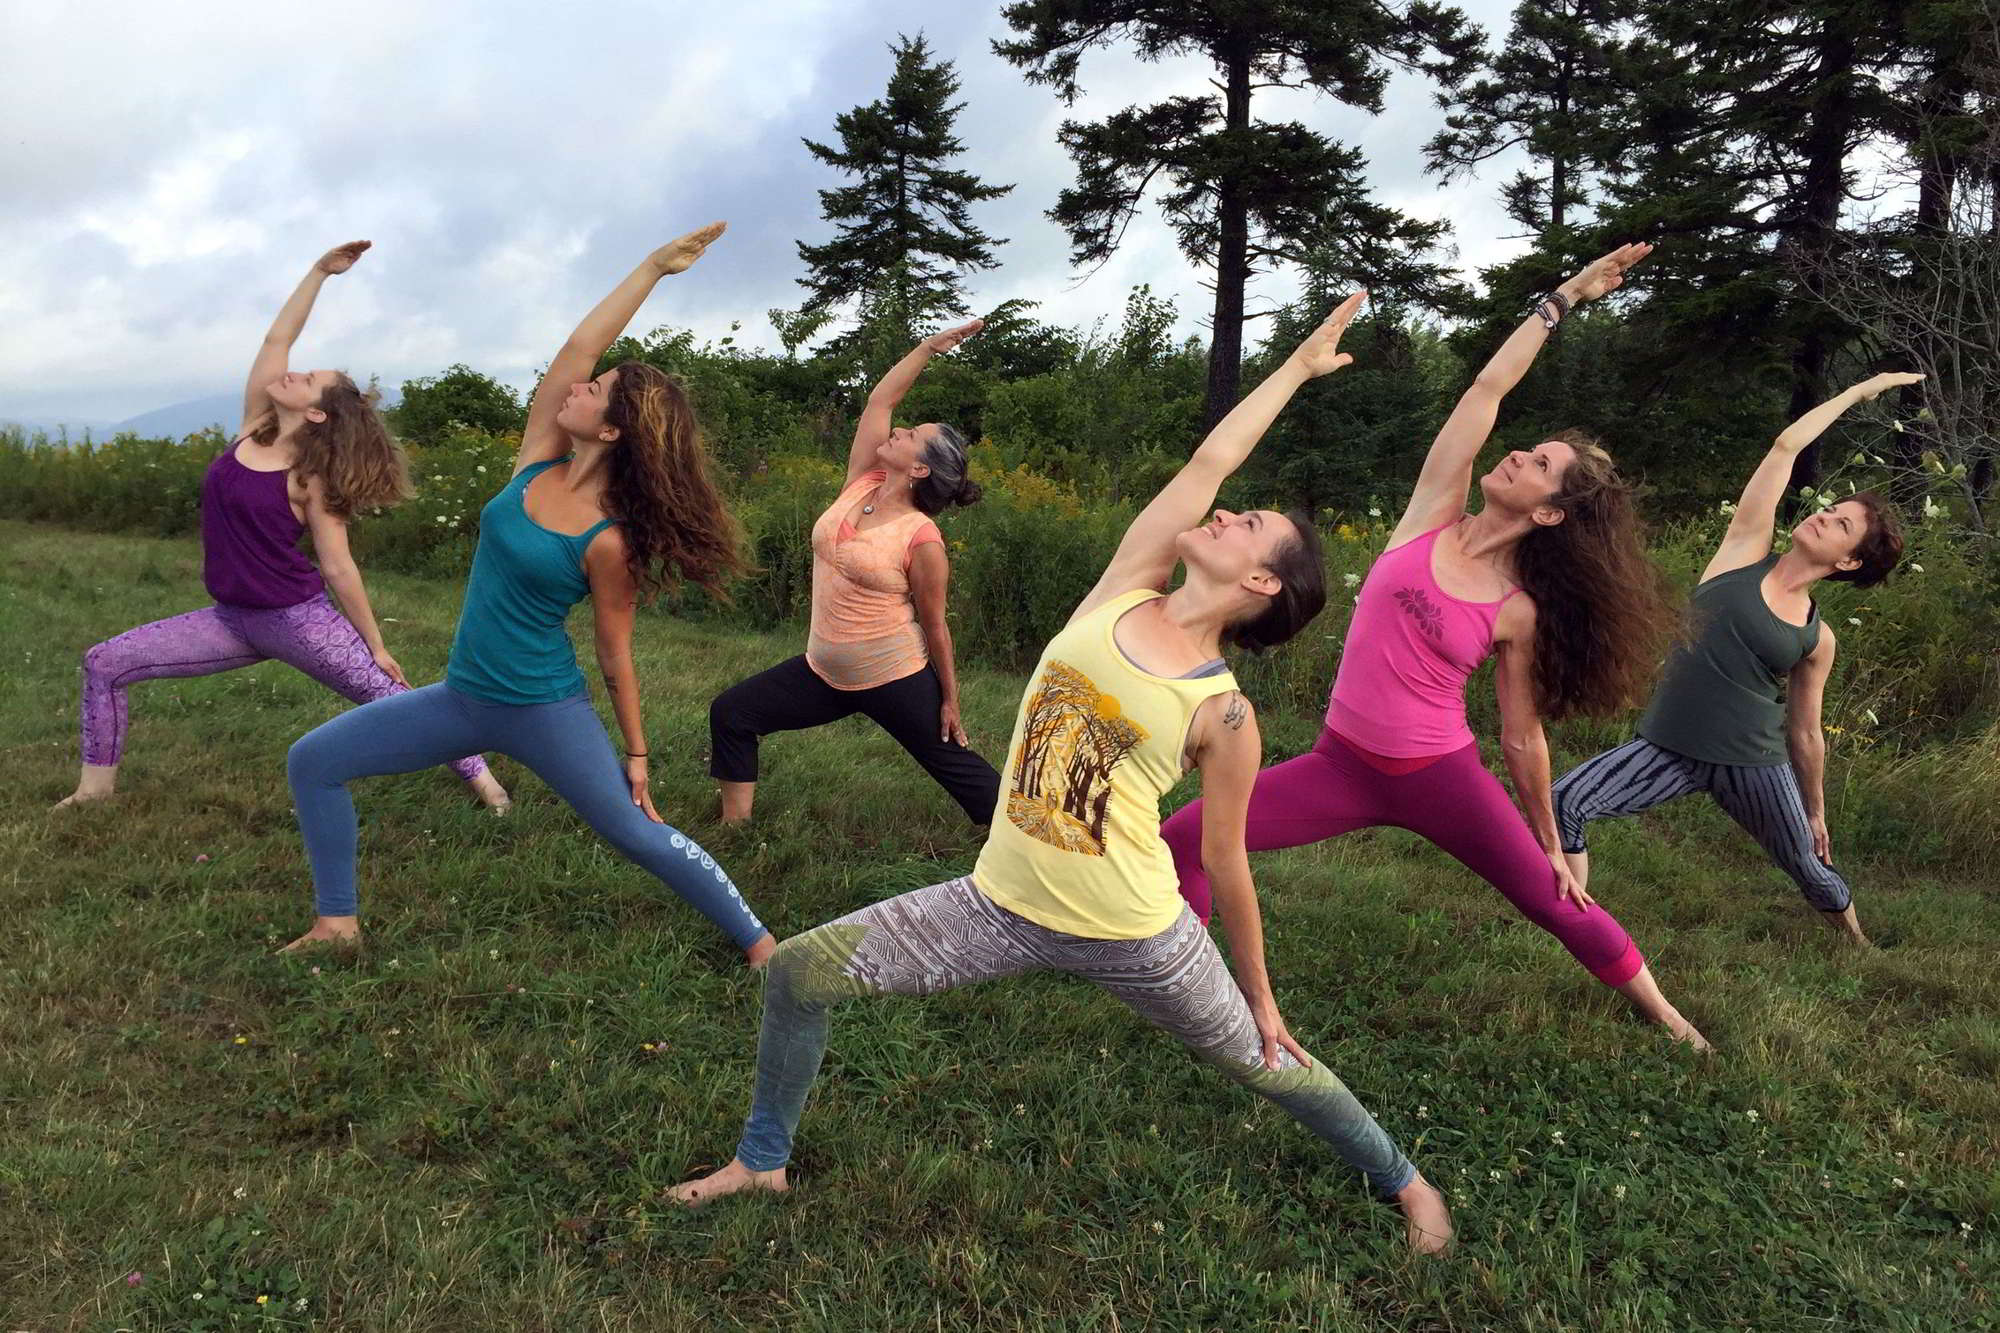 a line of women perform virabhadrasana II in a field